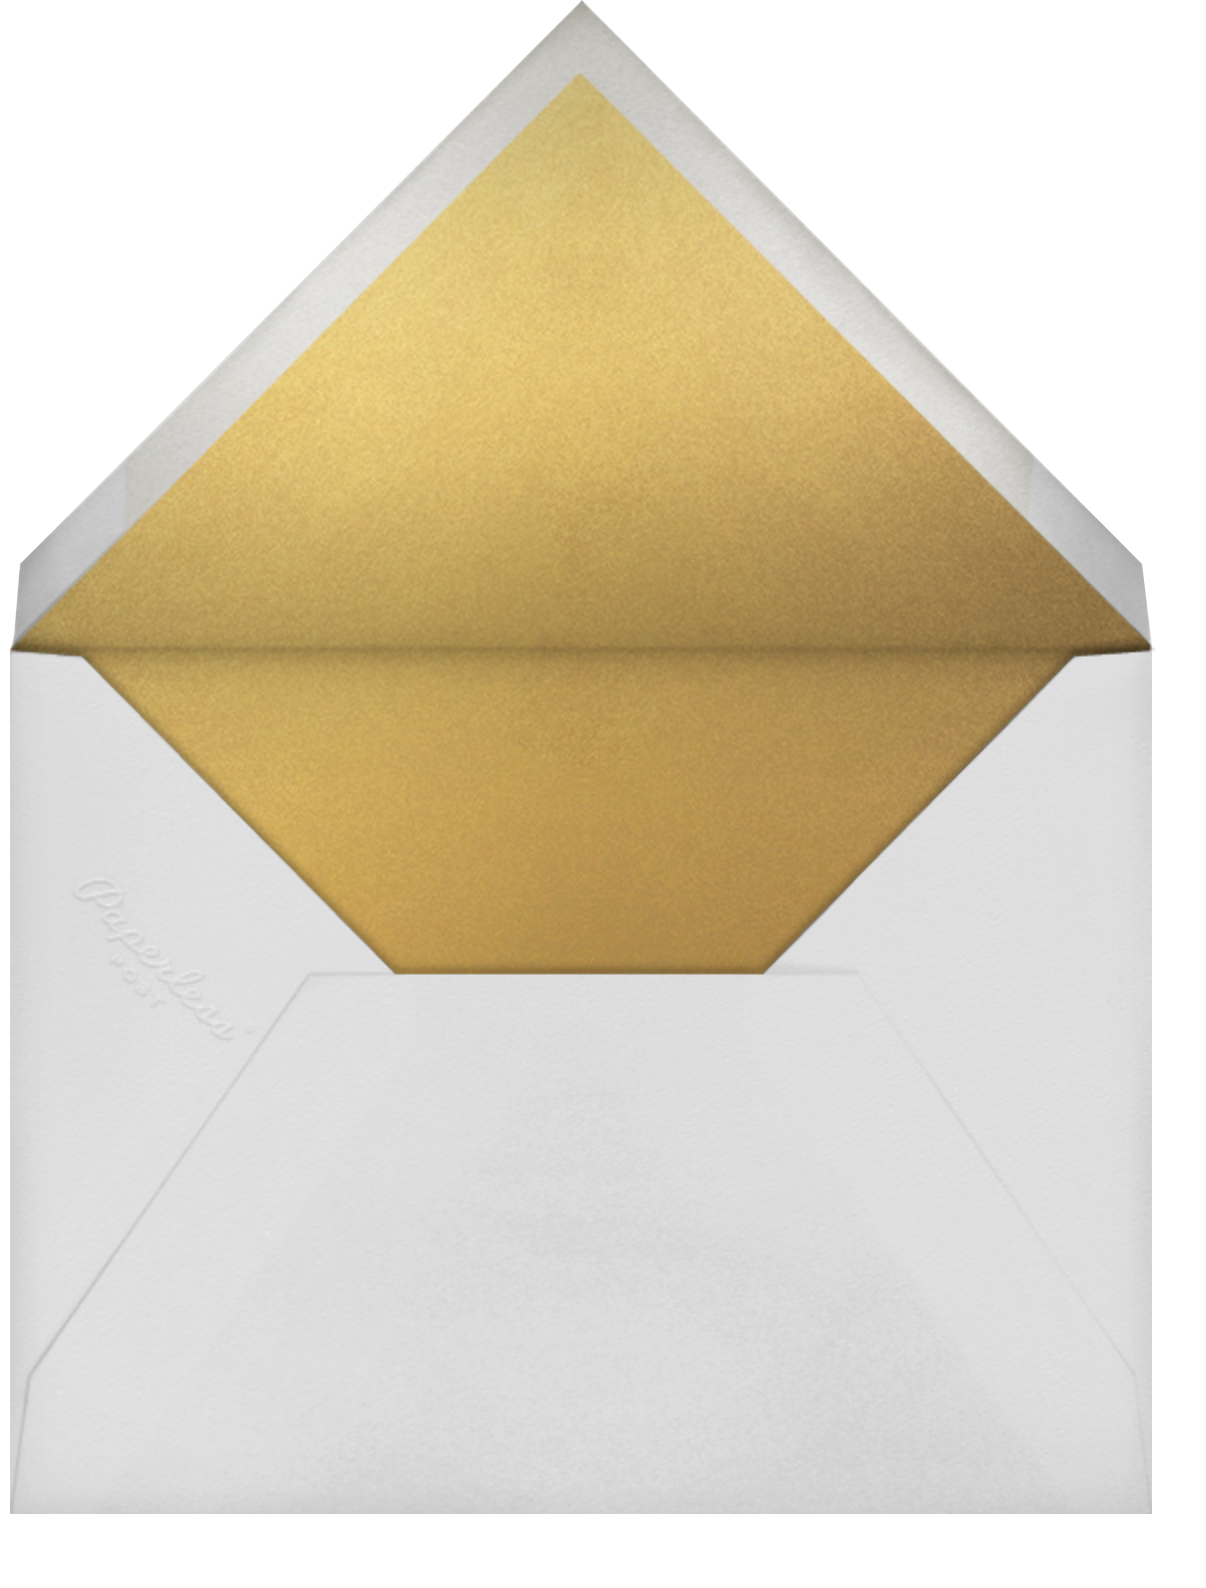 Gold Eclipse (New Date) - Paperless Post - Photo  - envelope back